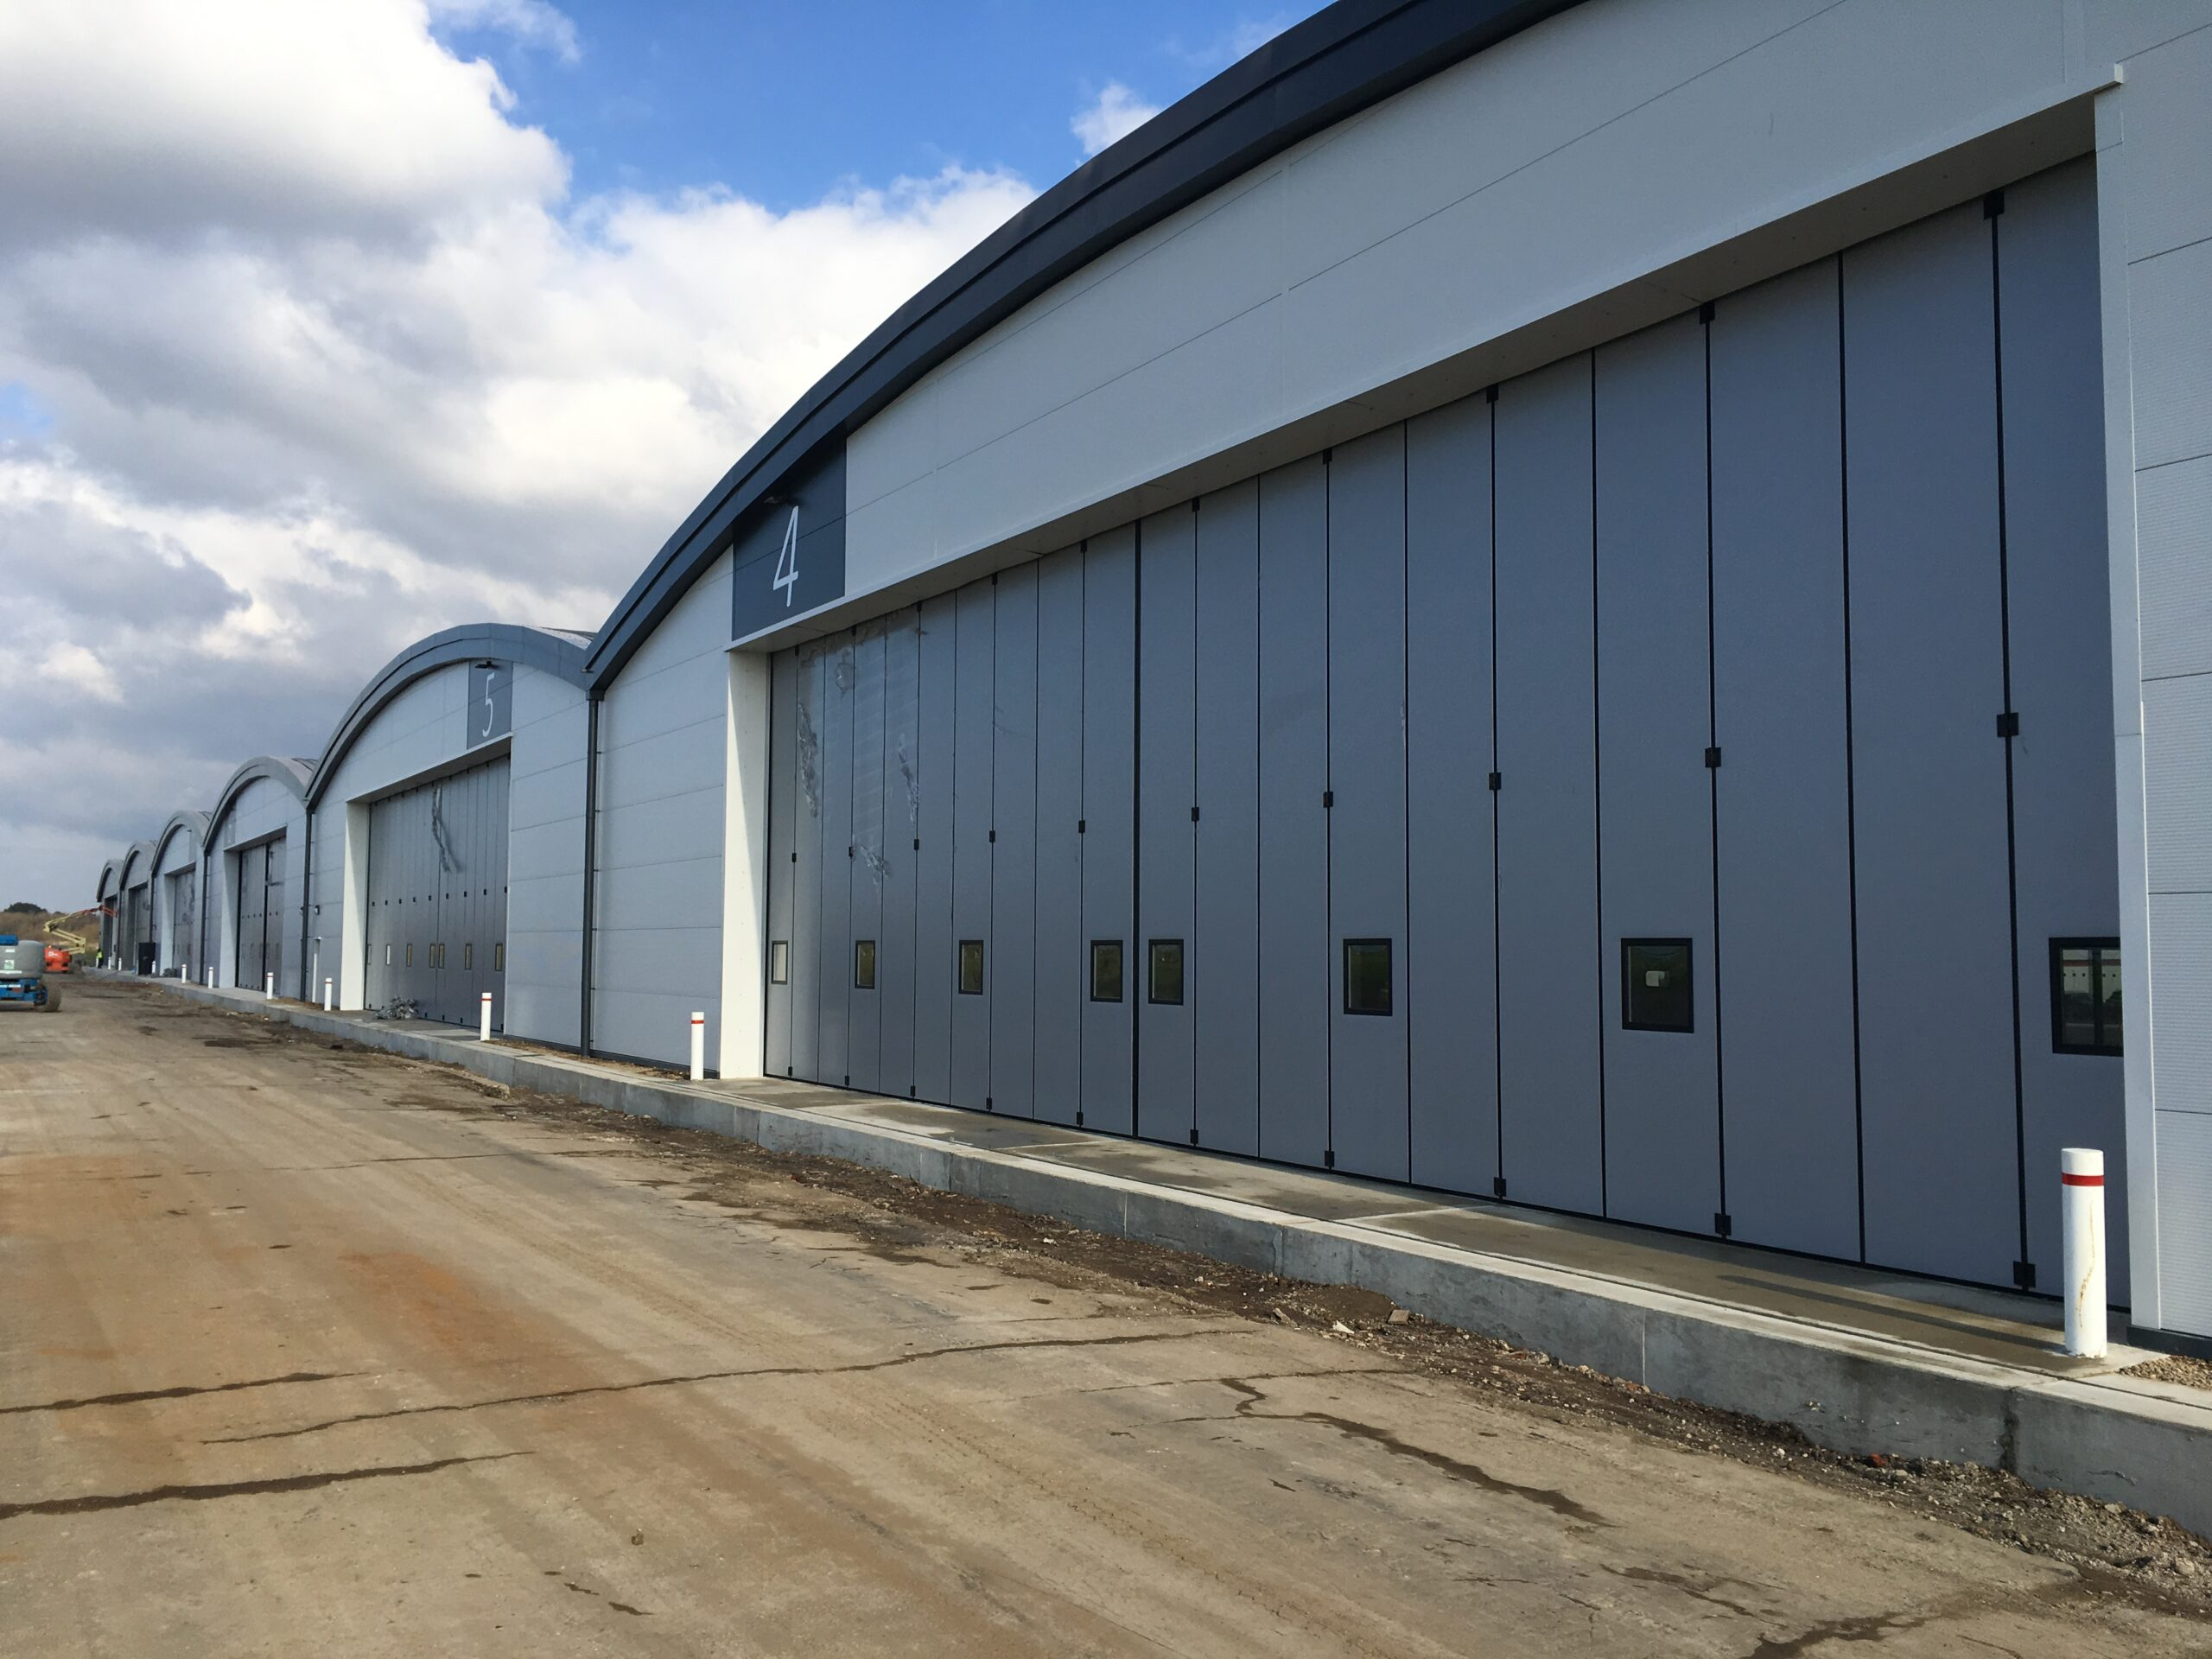 Former Daedalus site in Hampshire, Solent Airport – Eleven Osprey sliding folding doors – Six Business Hangars 2018